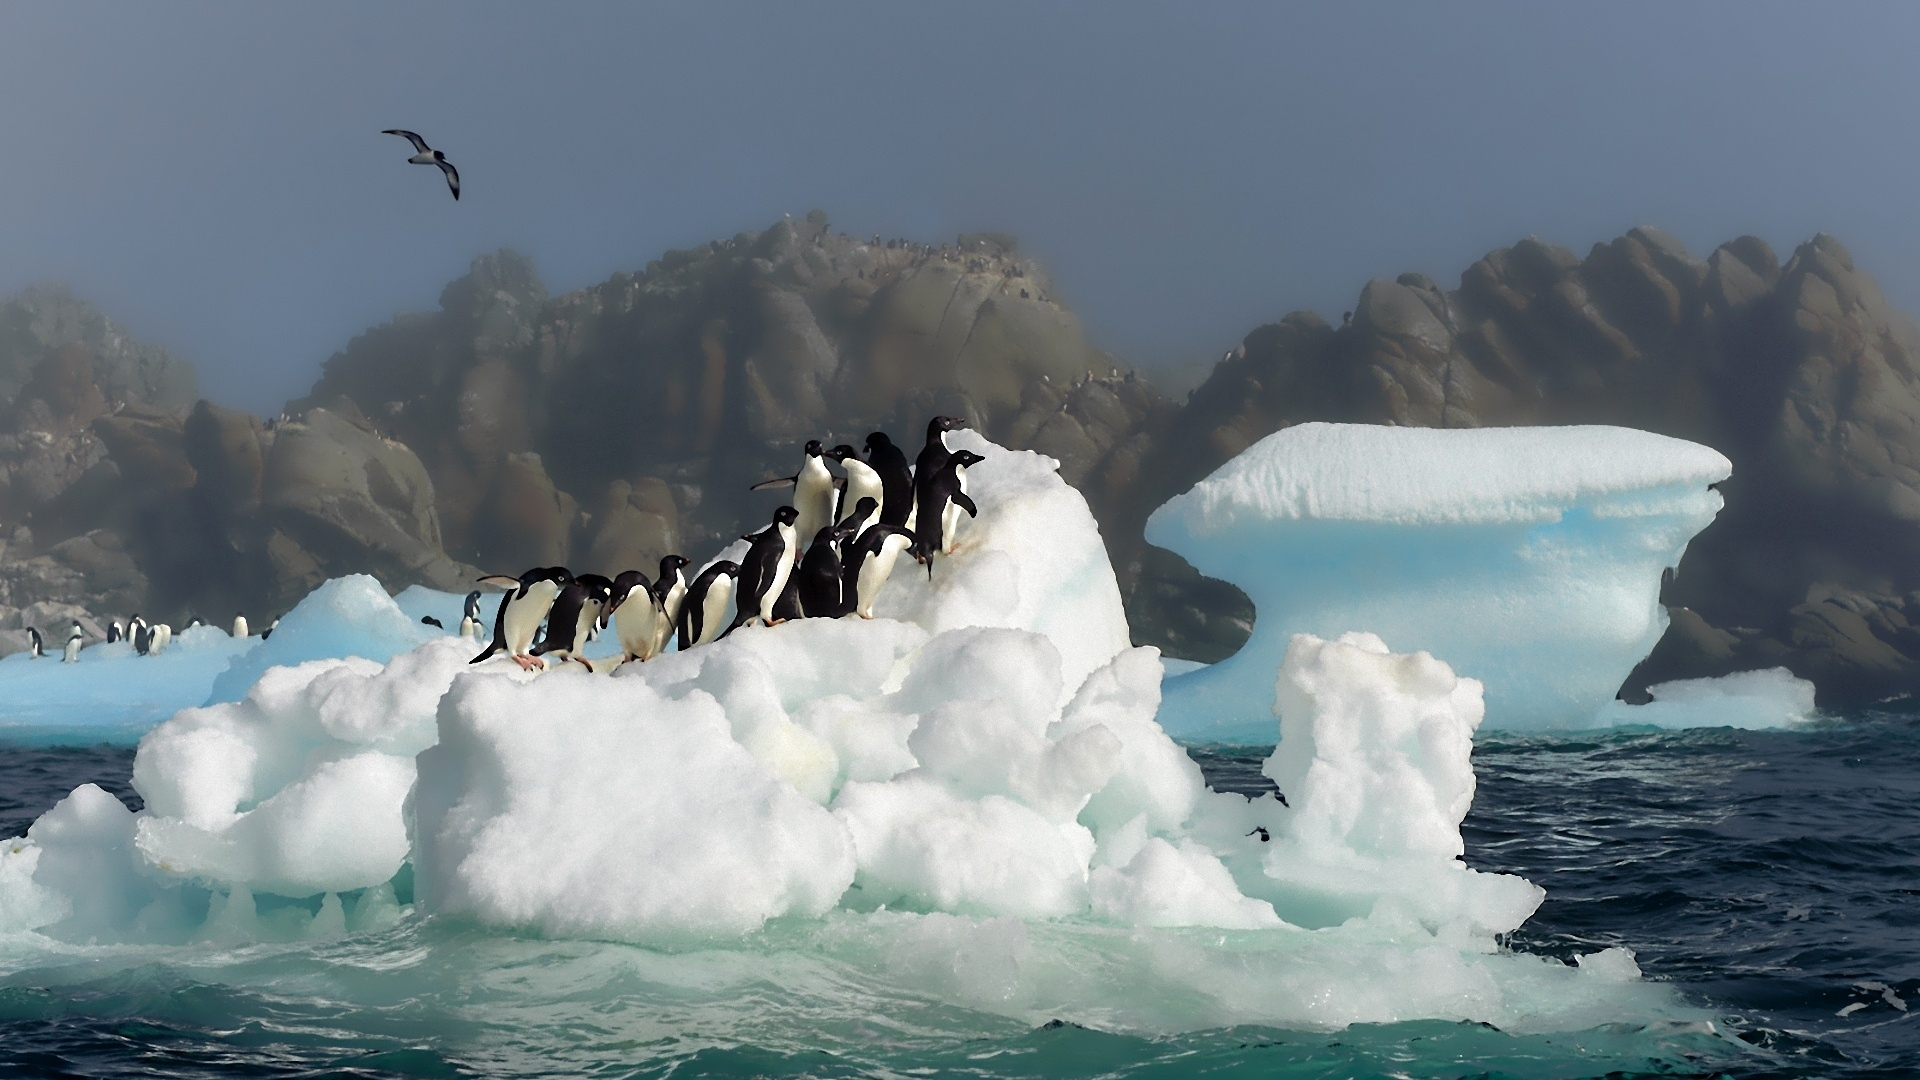 Cute Cartoon Bird Wallpapers Many Penguins On A Iceberg Antarctica Wallpaper